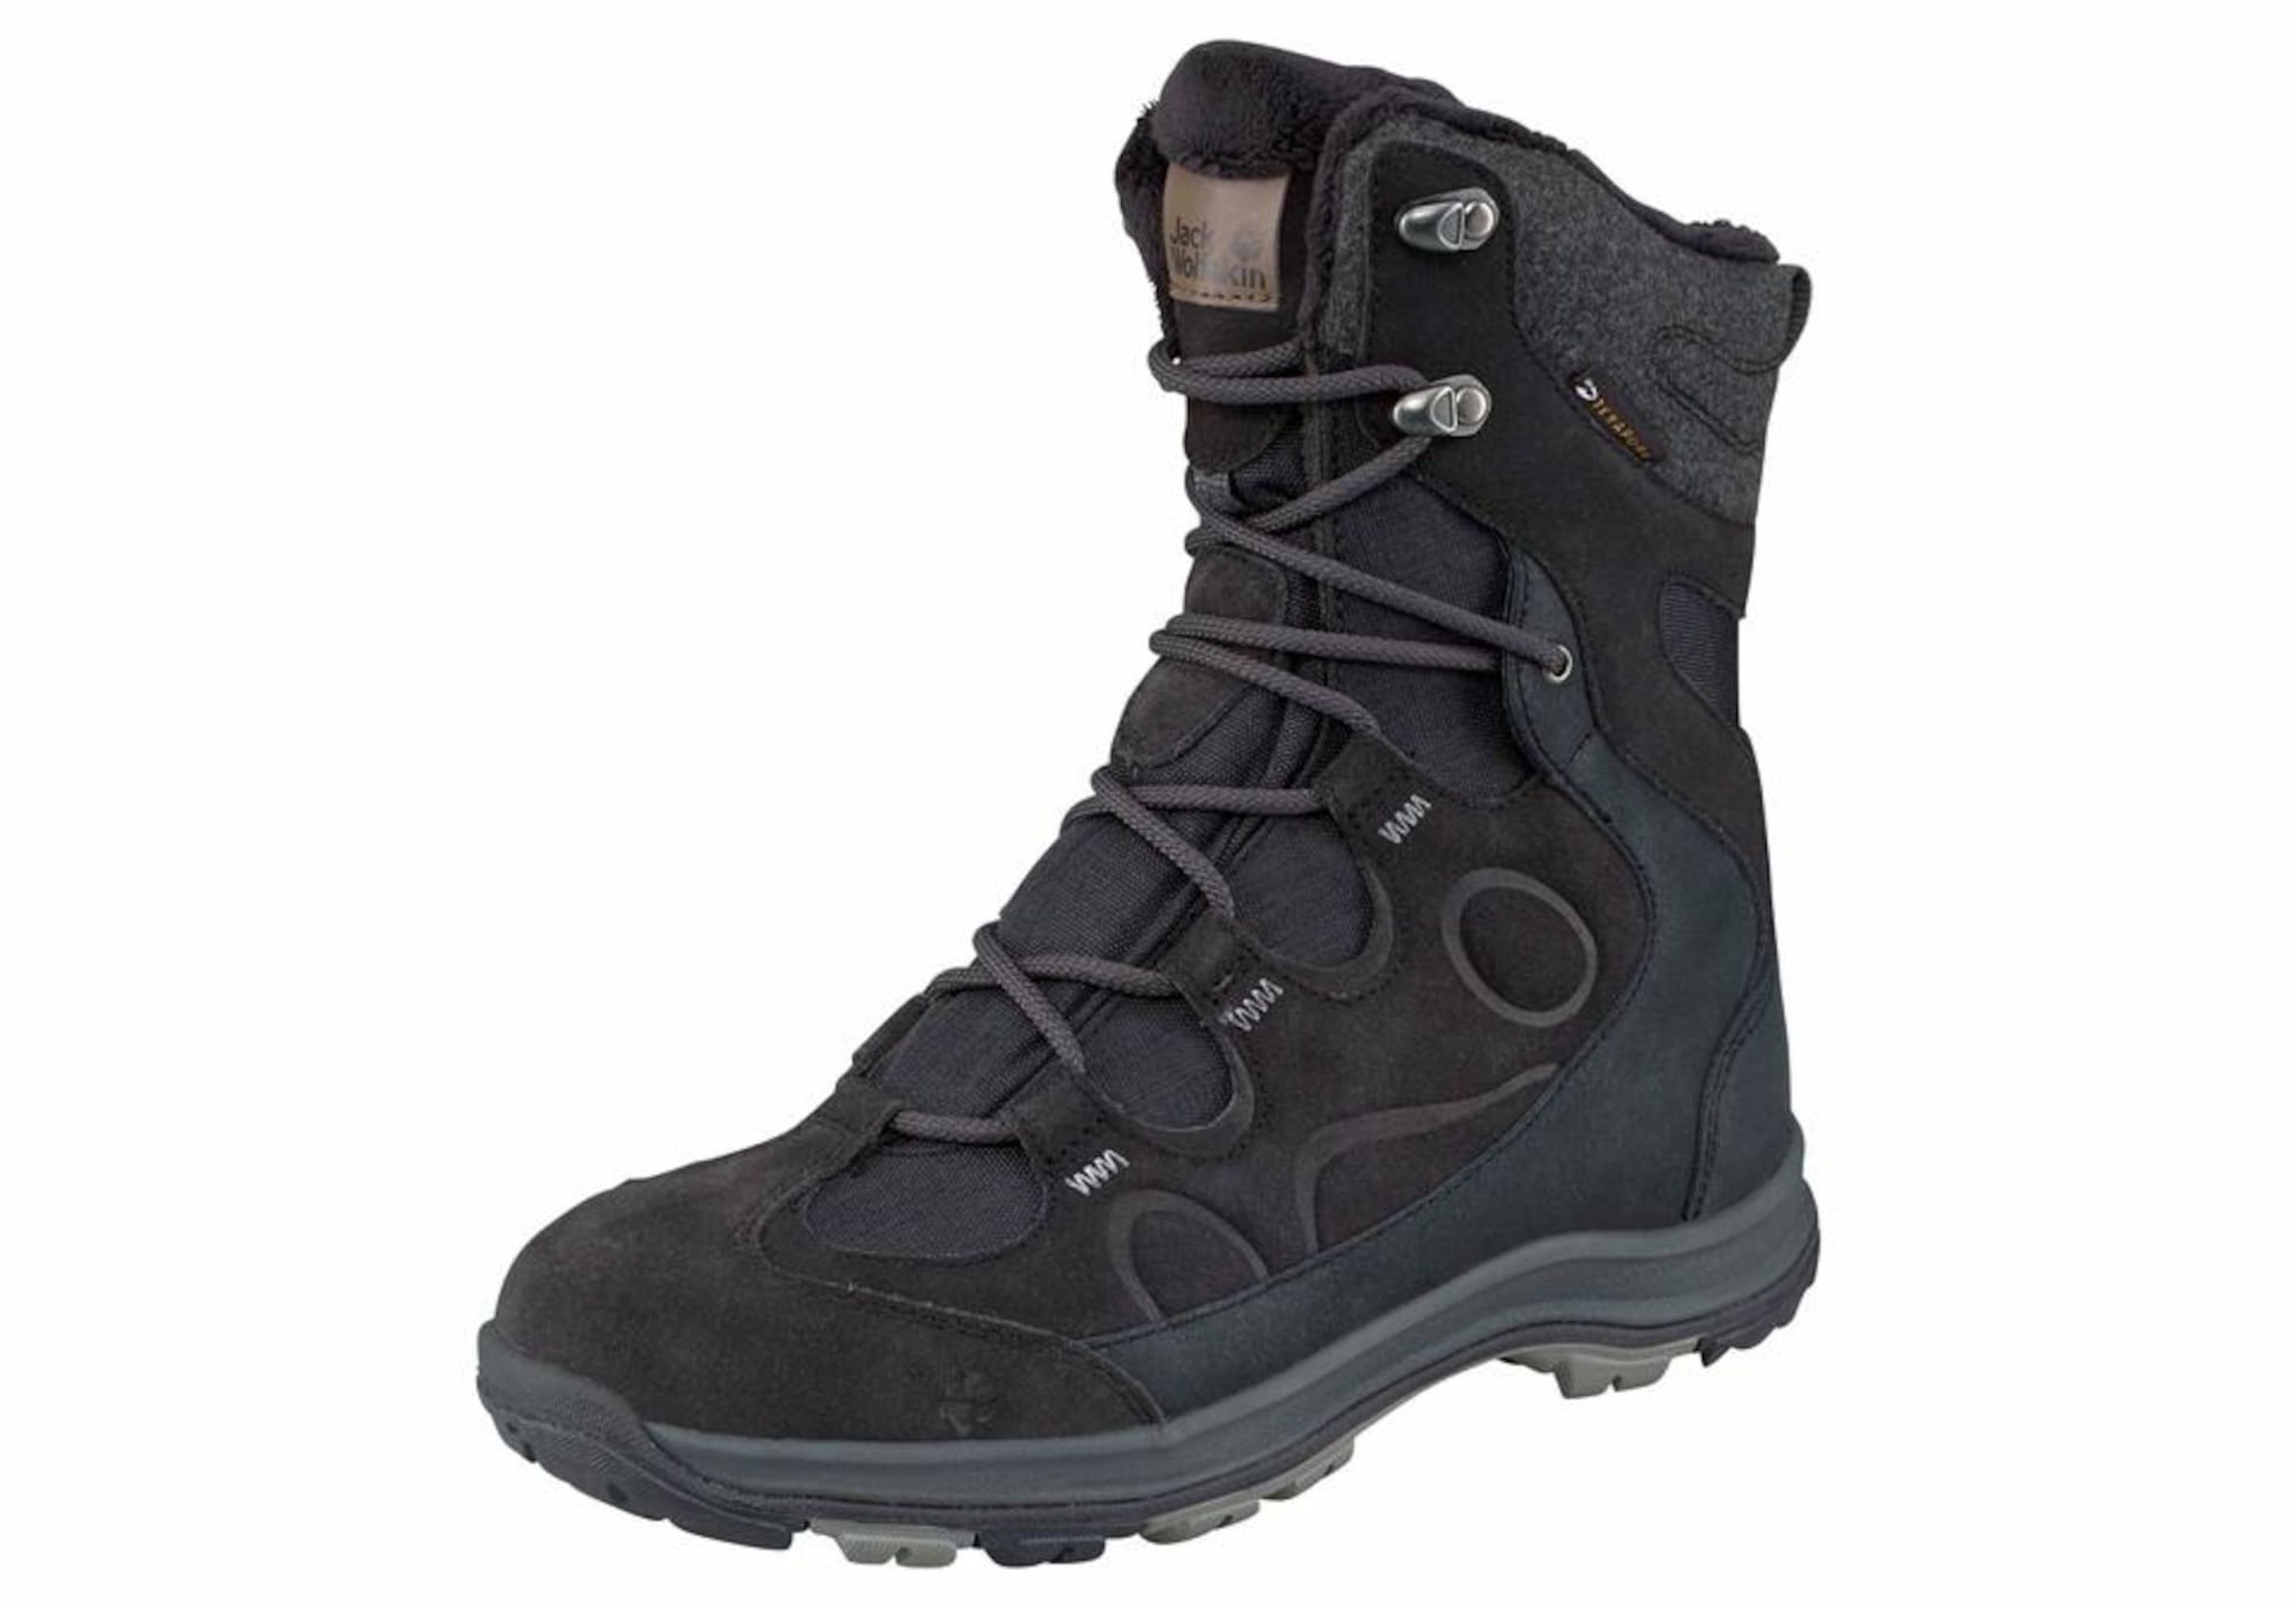 Winterstiefel ´Thunder bay texapore high´